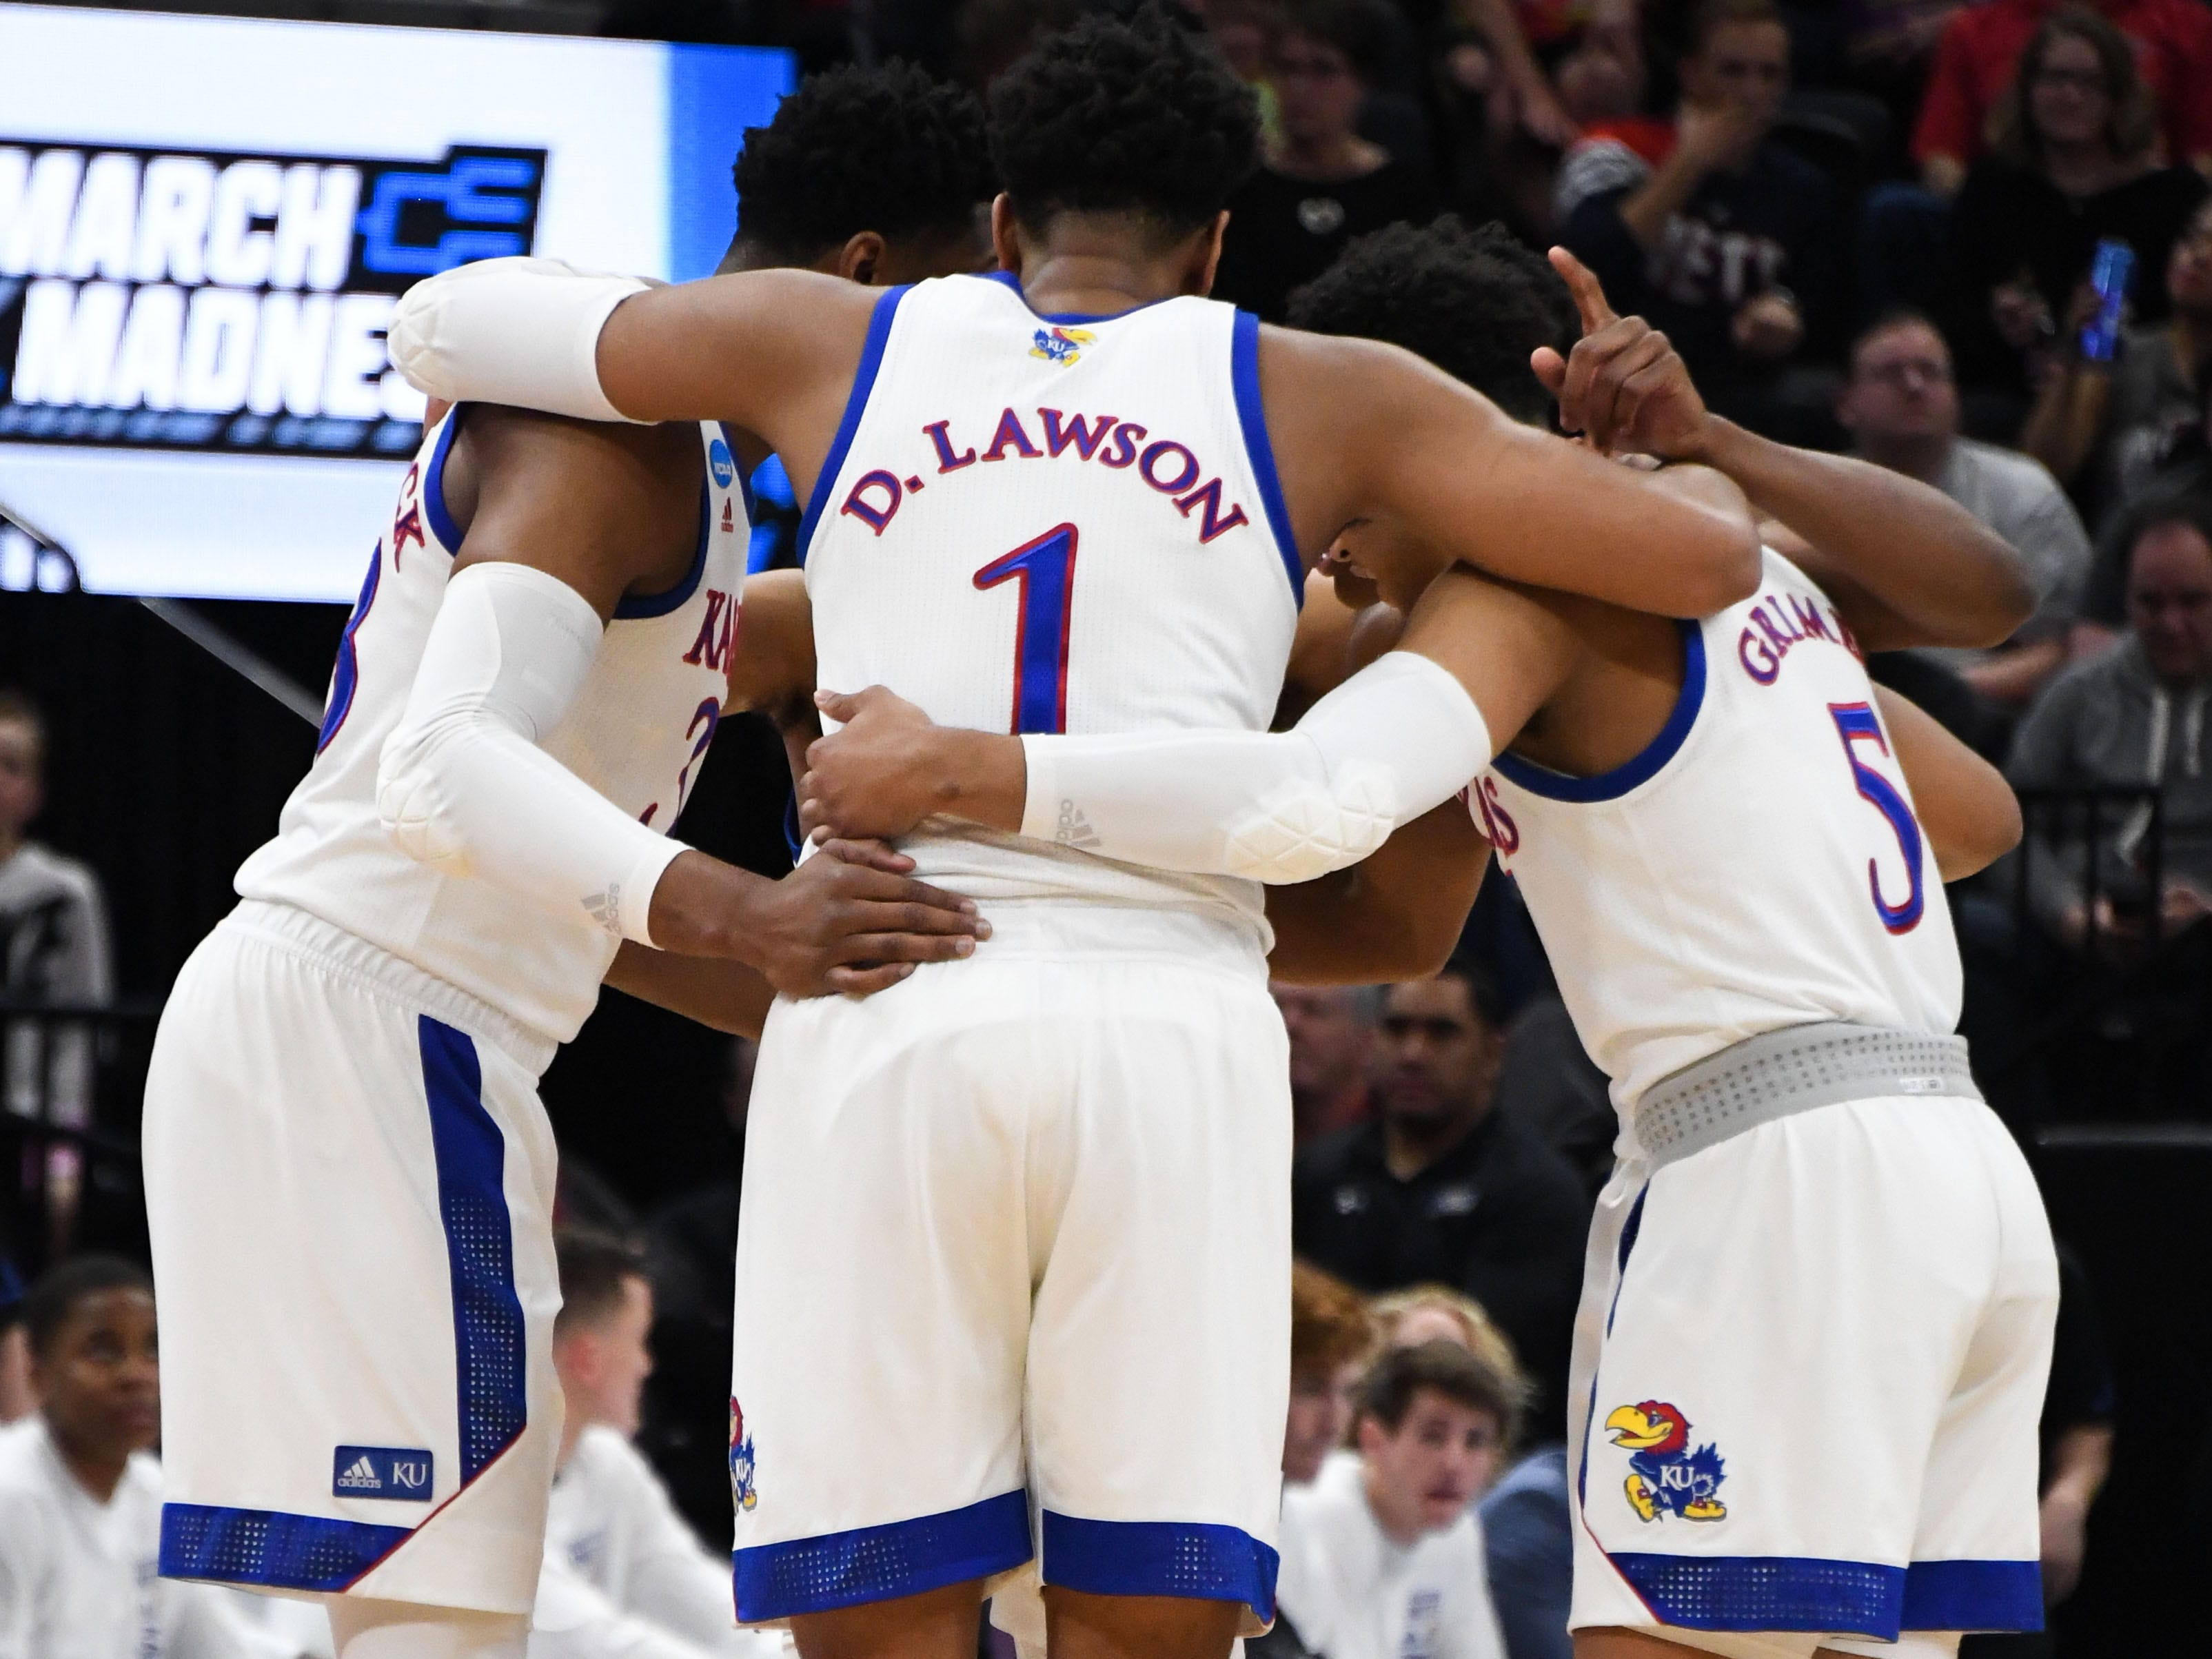 Mar 23, 2019; Salt Lake City, UT, USA; Kansas Jayhawks forward Dedric Lawson (1) huddles with teammates during the first half in the second round of the 2019 NCAA Tournament against the Auburn Tigers at Vivint Smart Home Arena. Mandatory Credit: Kirby Lee-USA TODAY Sports